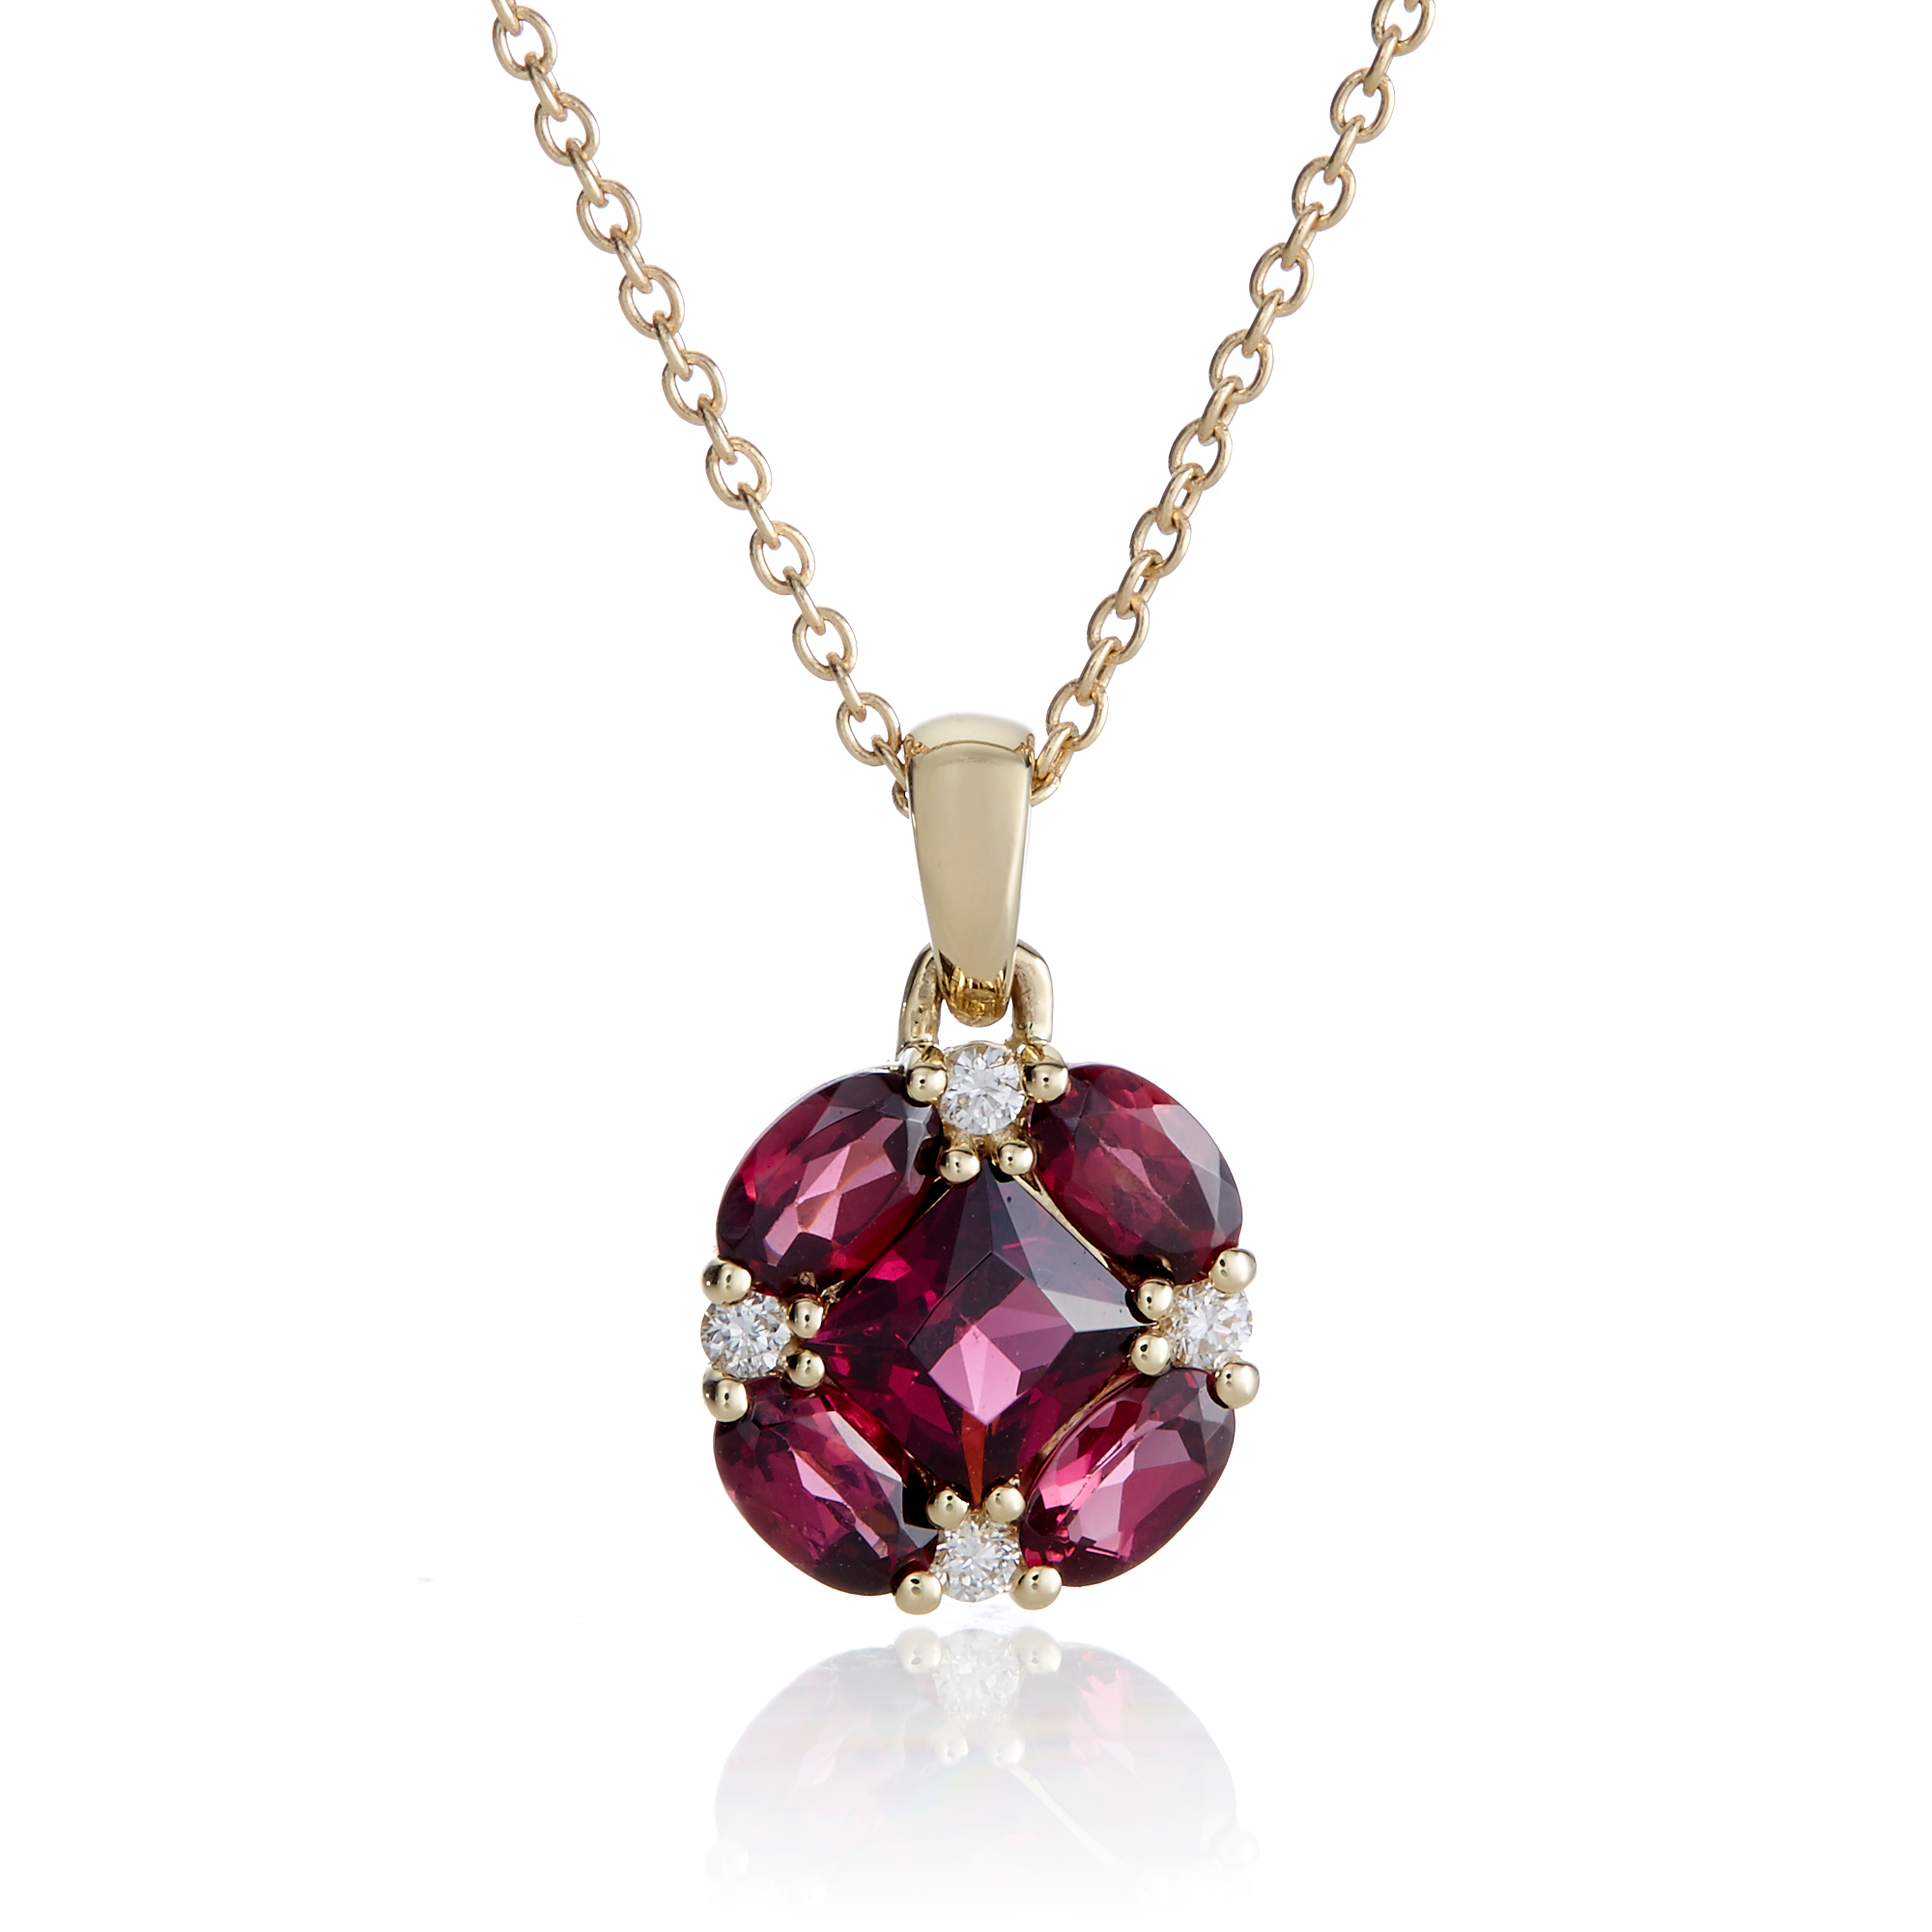 Gump's Rhodolite Garnet and Diamond Quadrille Gold Necklace